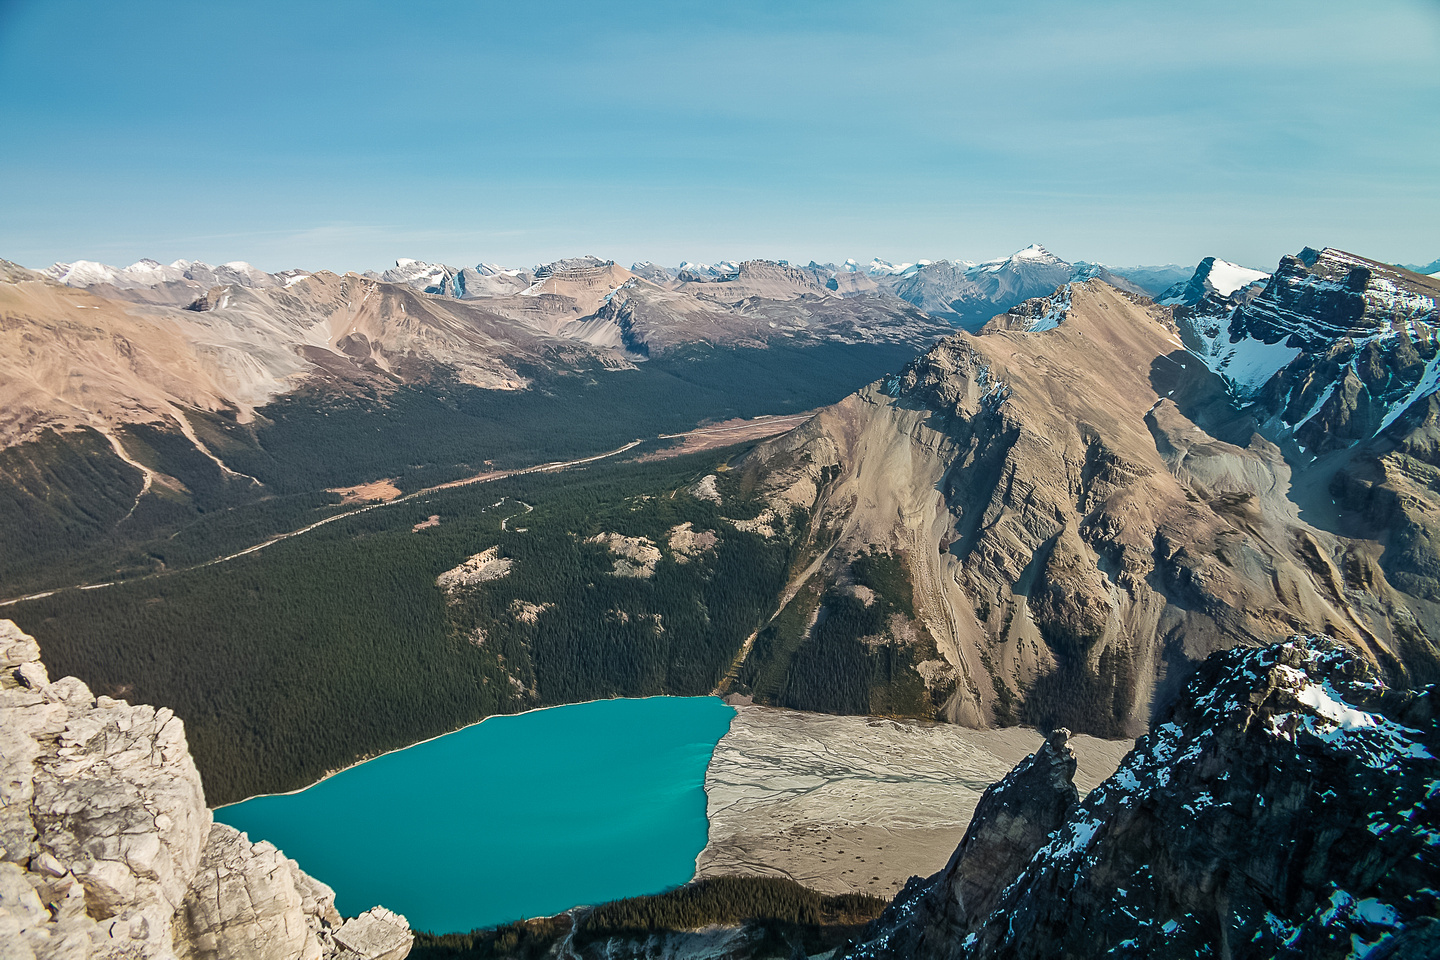 Great views to Jimmy Simpson over Peyto Lake.